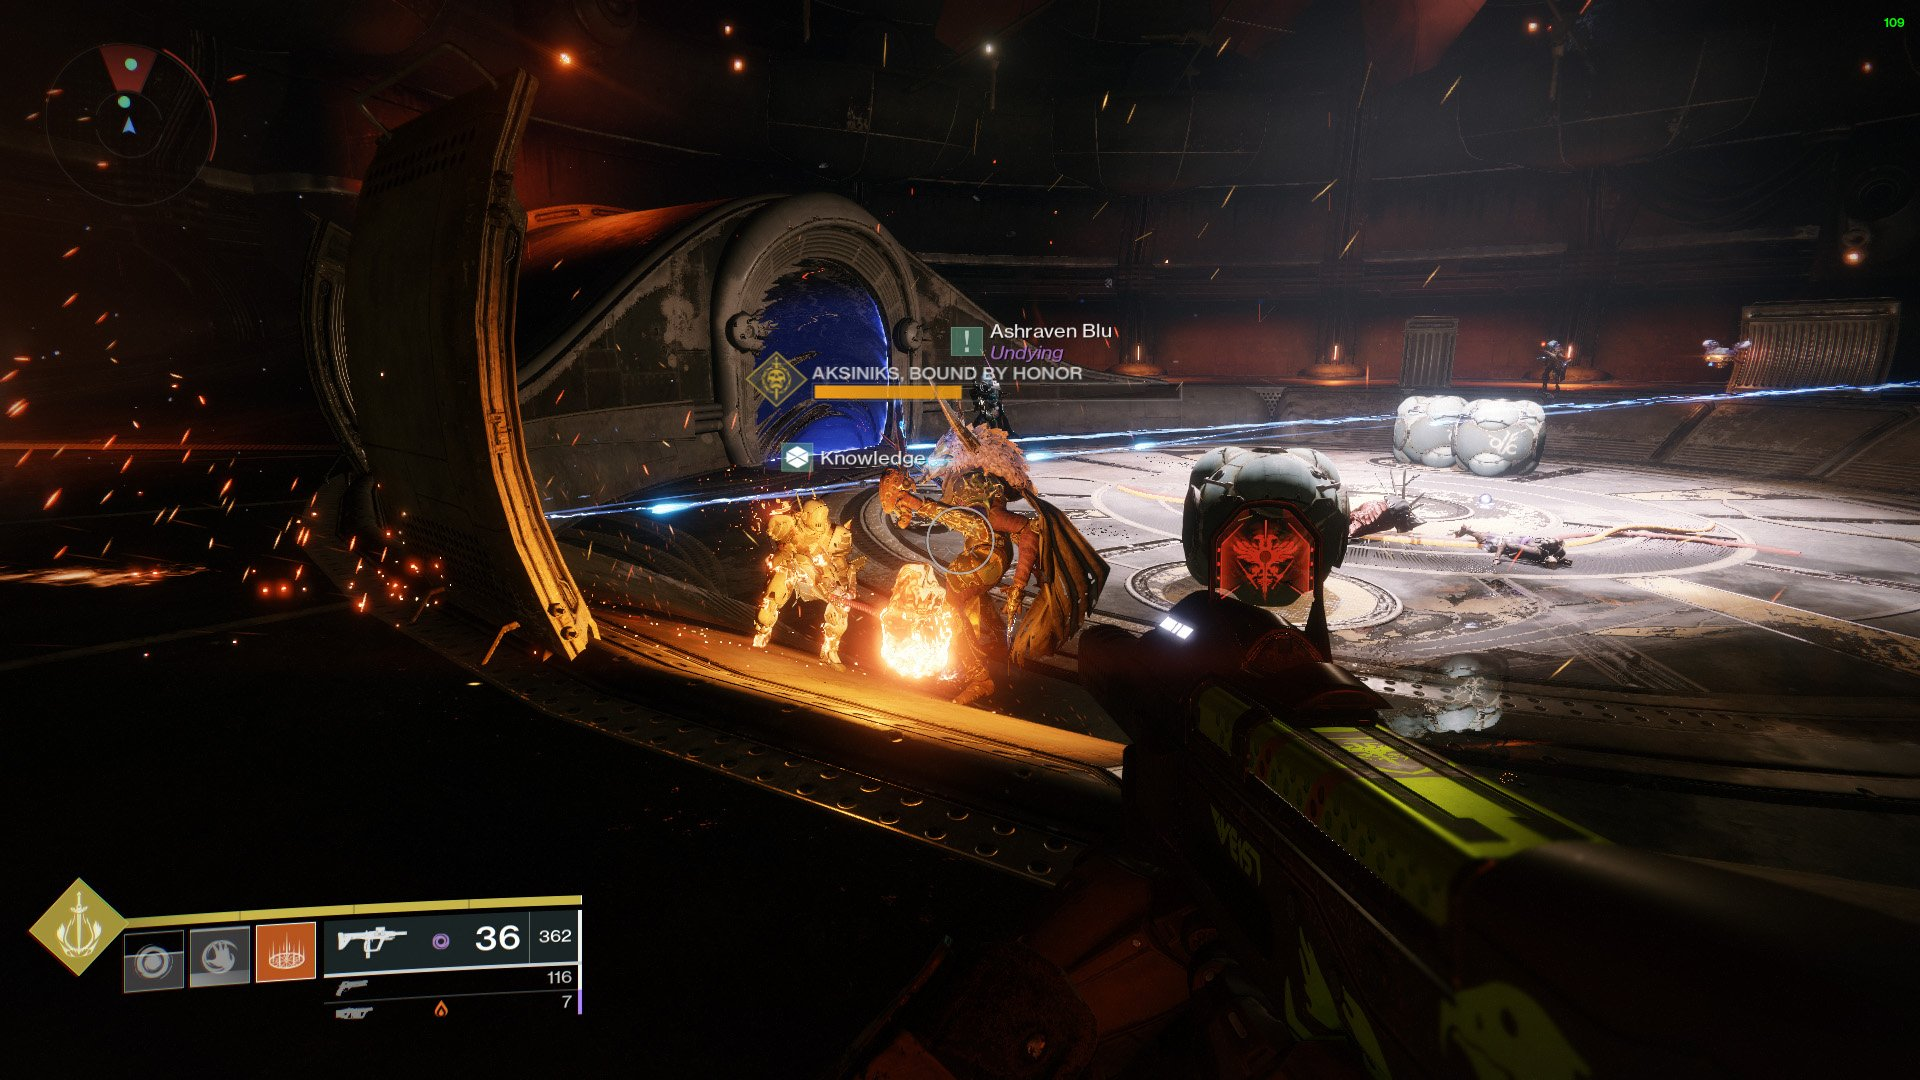 destiny 2 memento backroom brawl